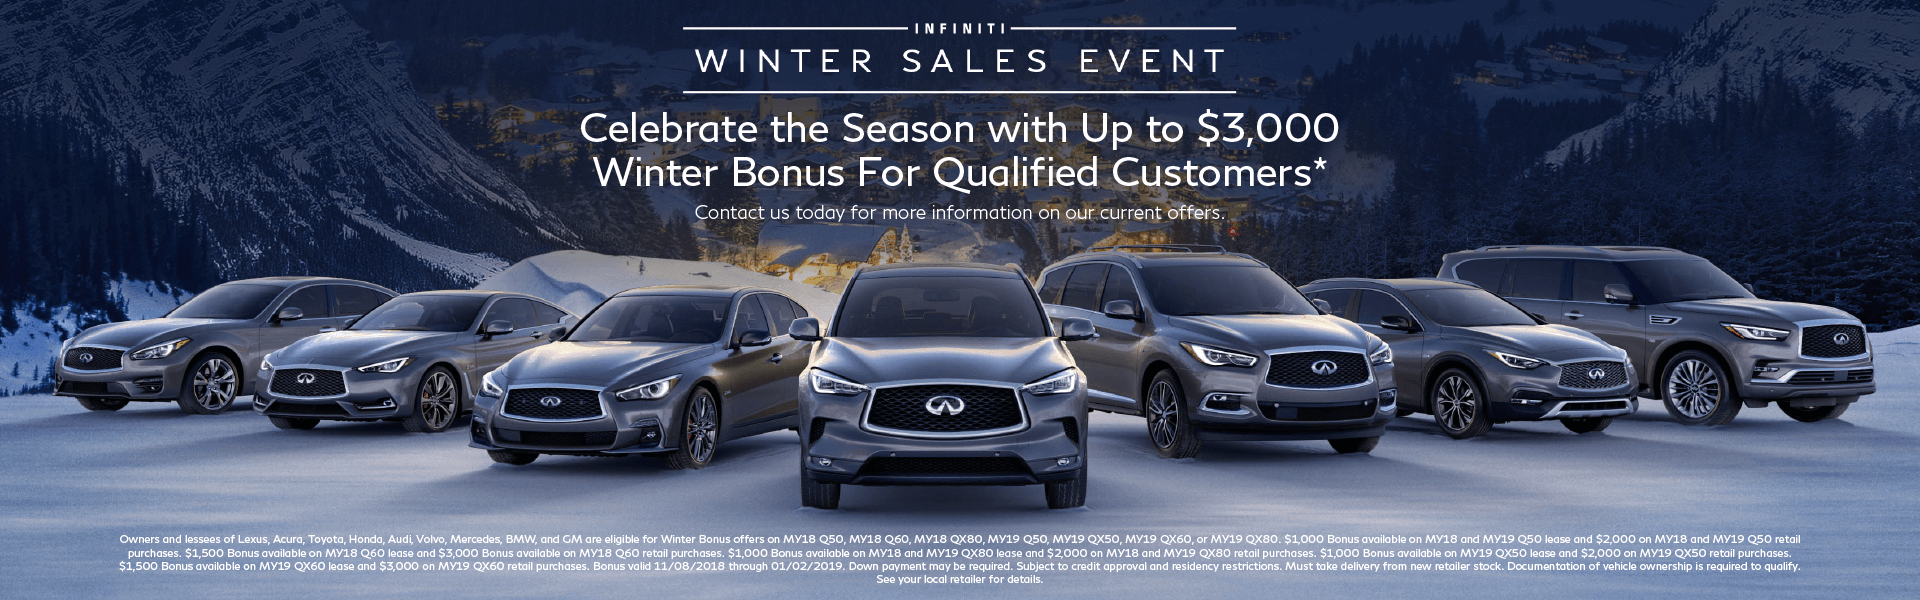 INFINITI WSE Winter Bonus